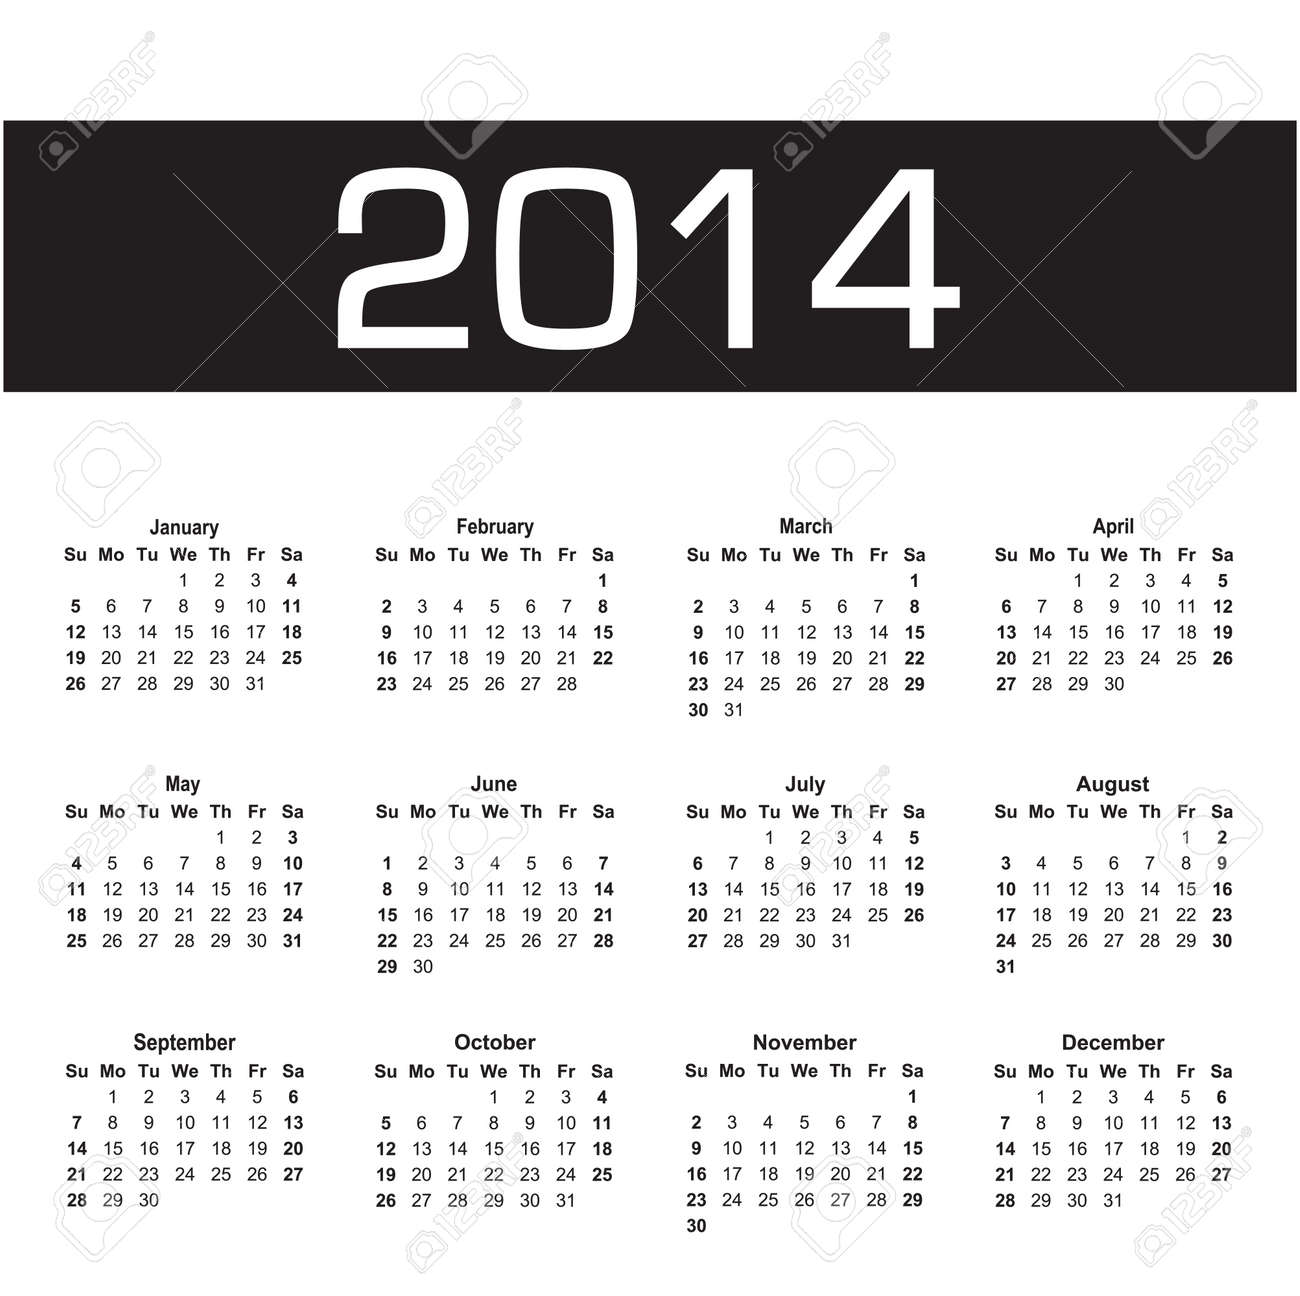 vector calendar 2014 black and white Stock Vector - 23111827